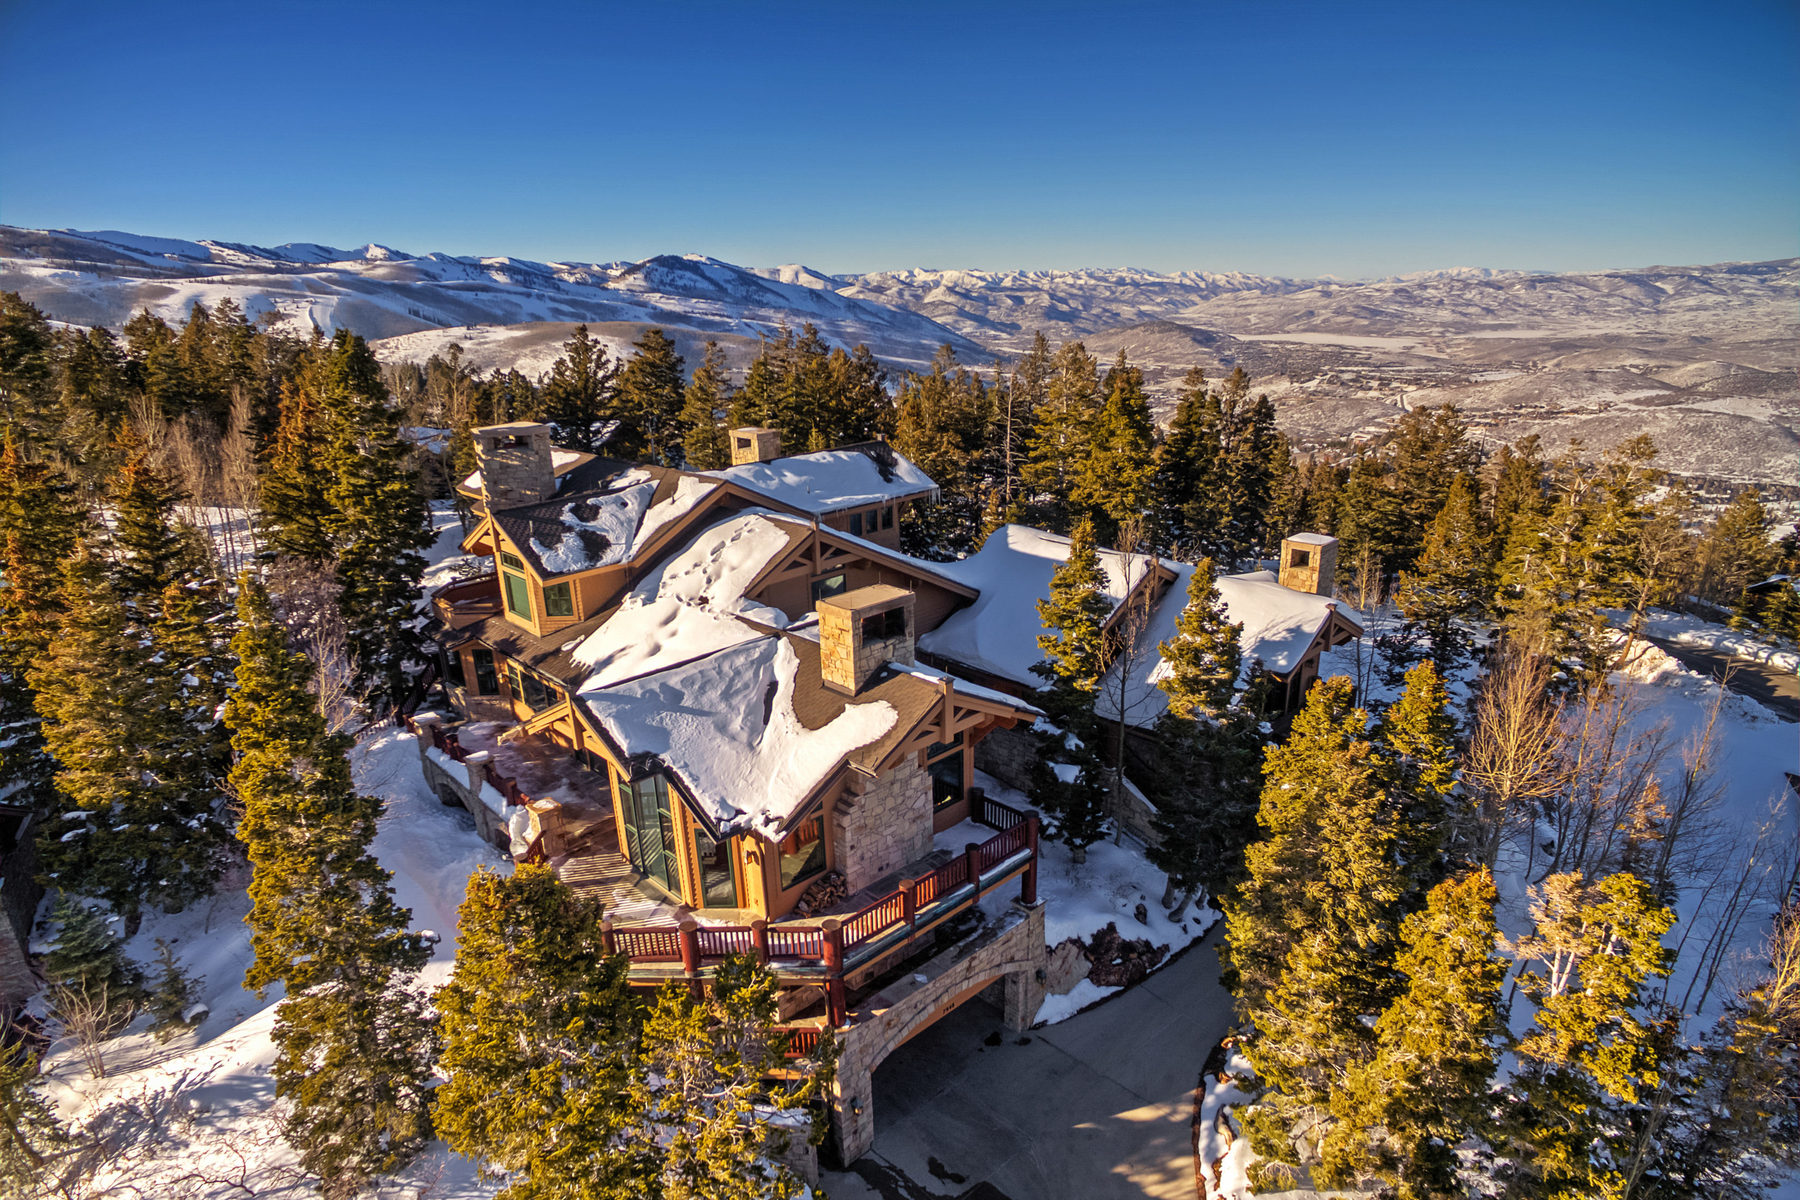 Частный односемейный дом для того Продажа на Privacy, Luxury, Views and Ultimate Ski access in Bald Eagle community 7948 Red Tail Ct Park City, Юта, 84060 Соединенные Штаты